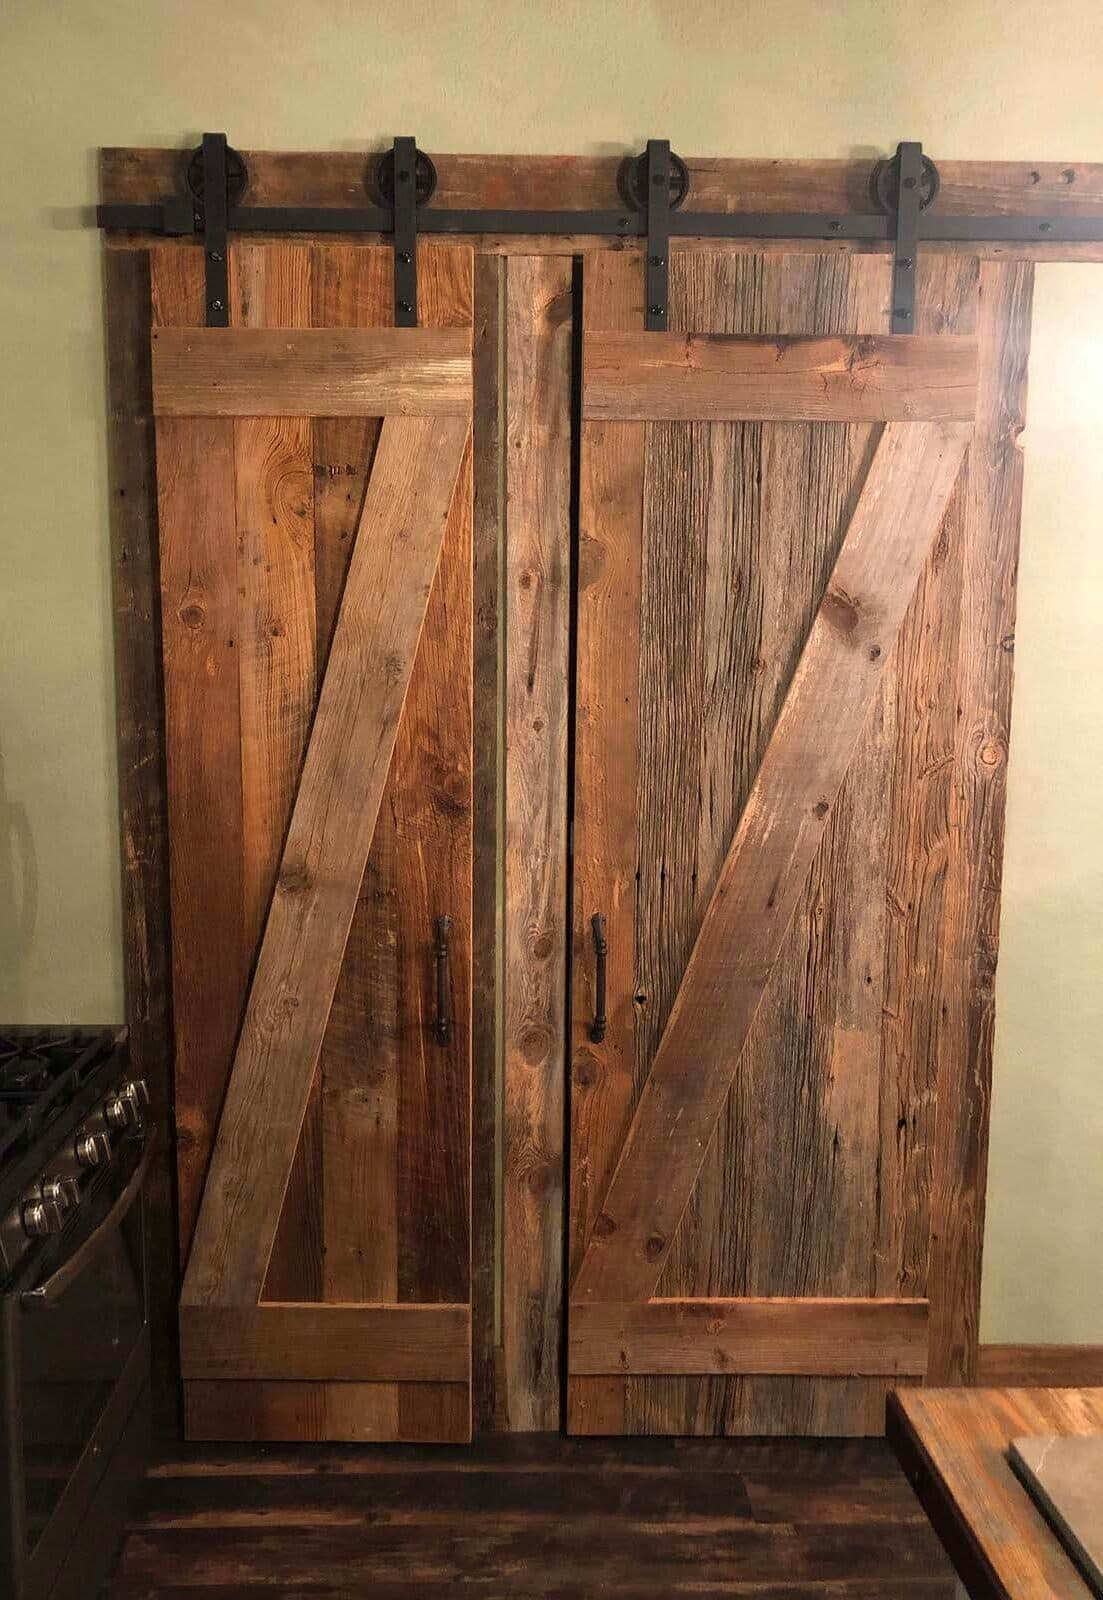 Reclaimed barn wood doors with original surface pine.